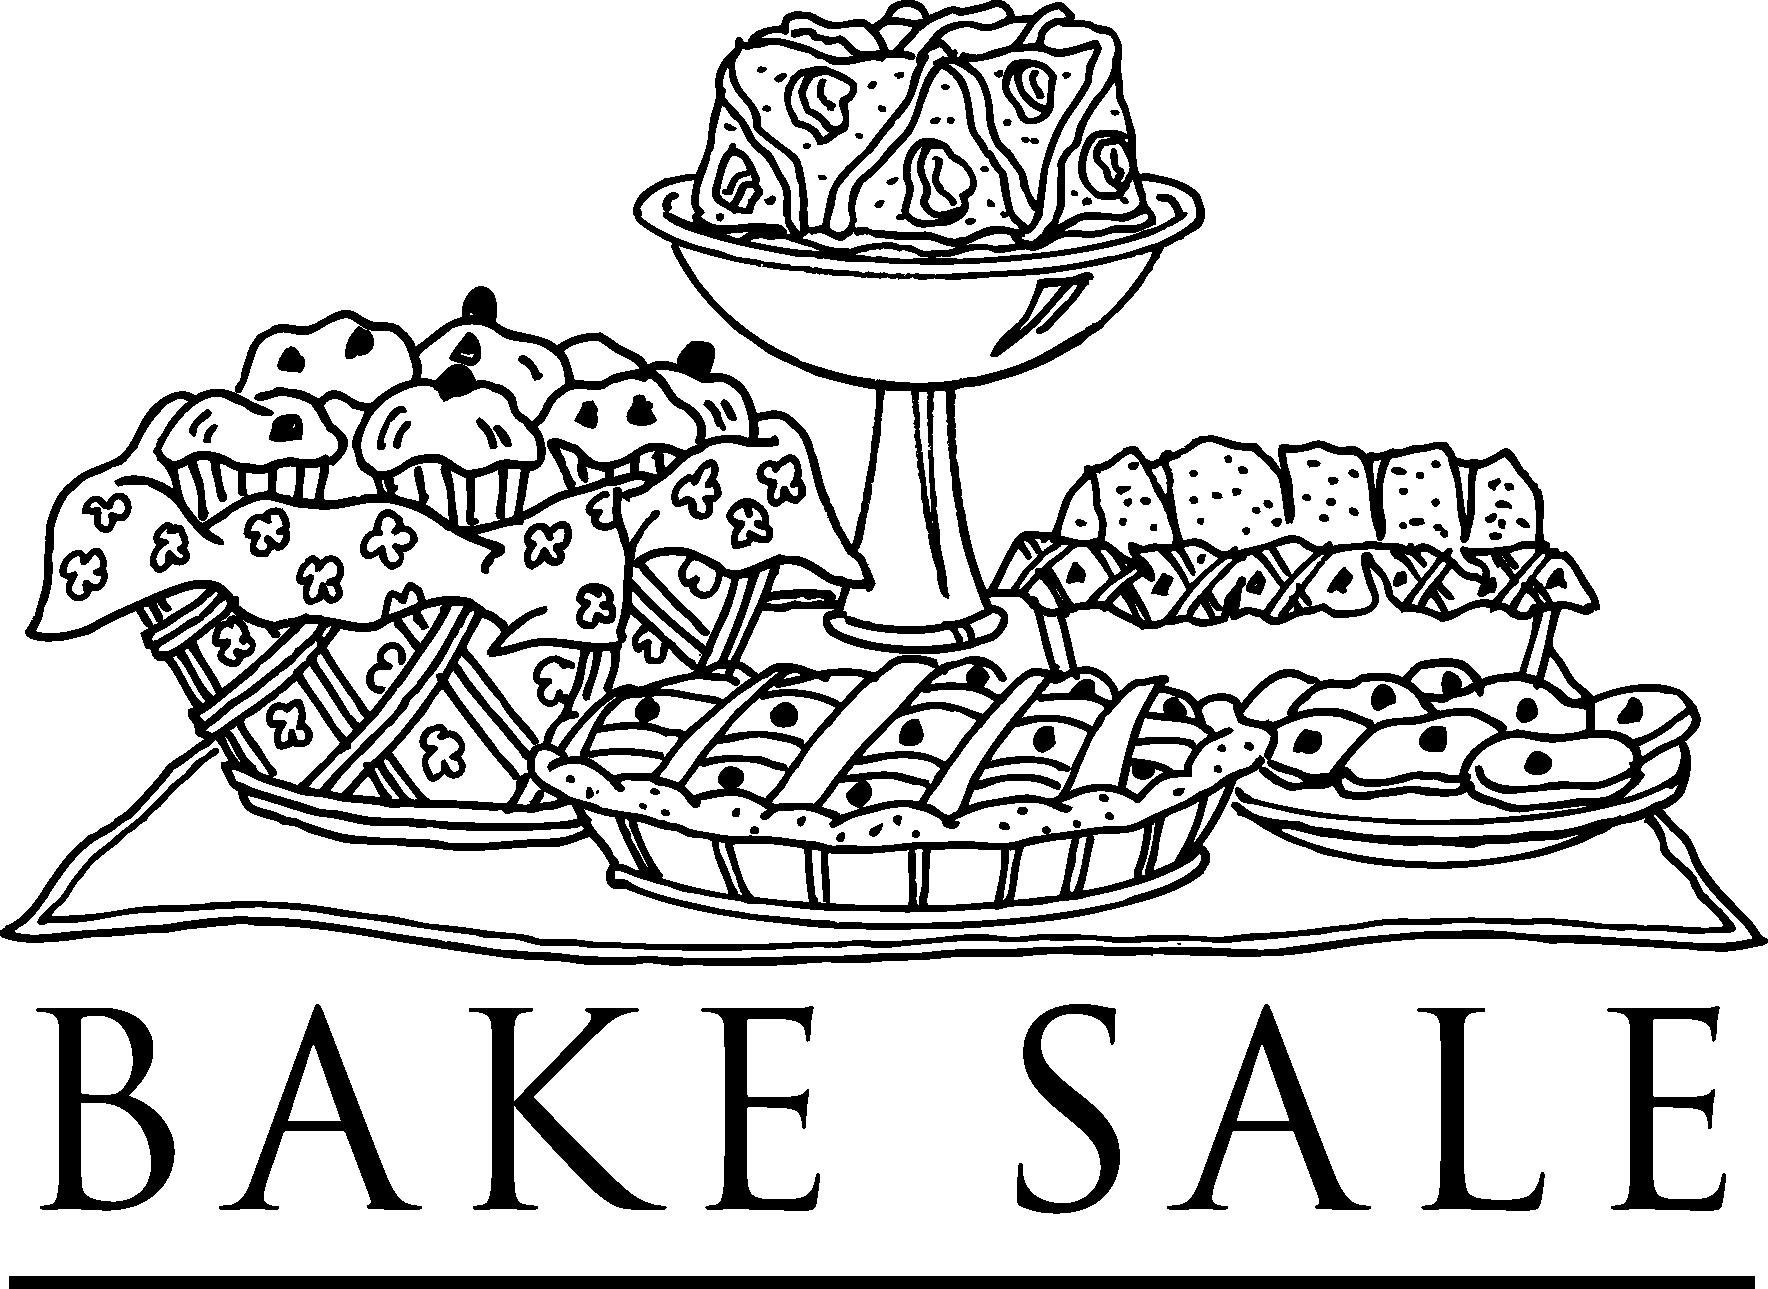 Bake sale free church yard sale and bake signs clipart.